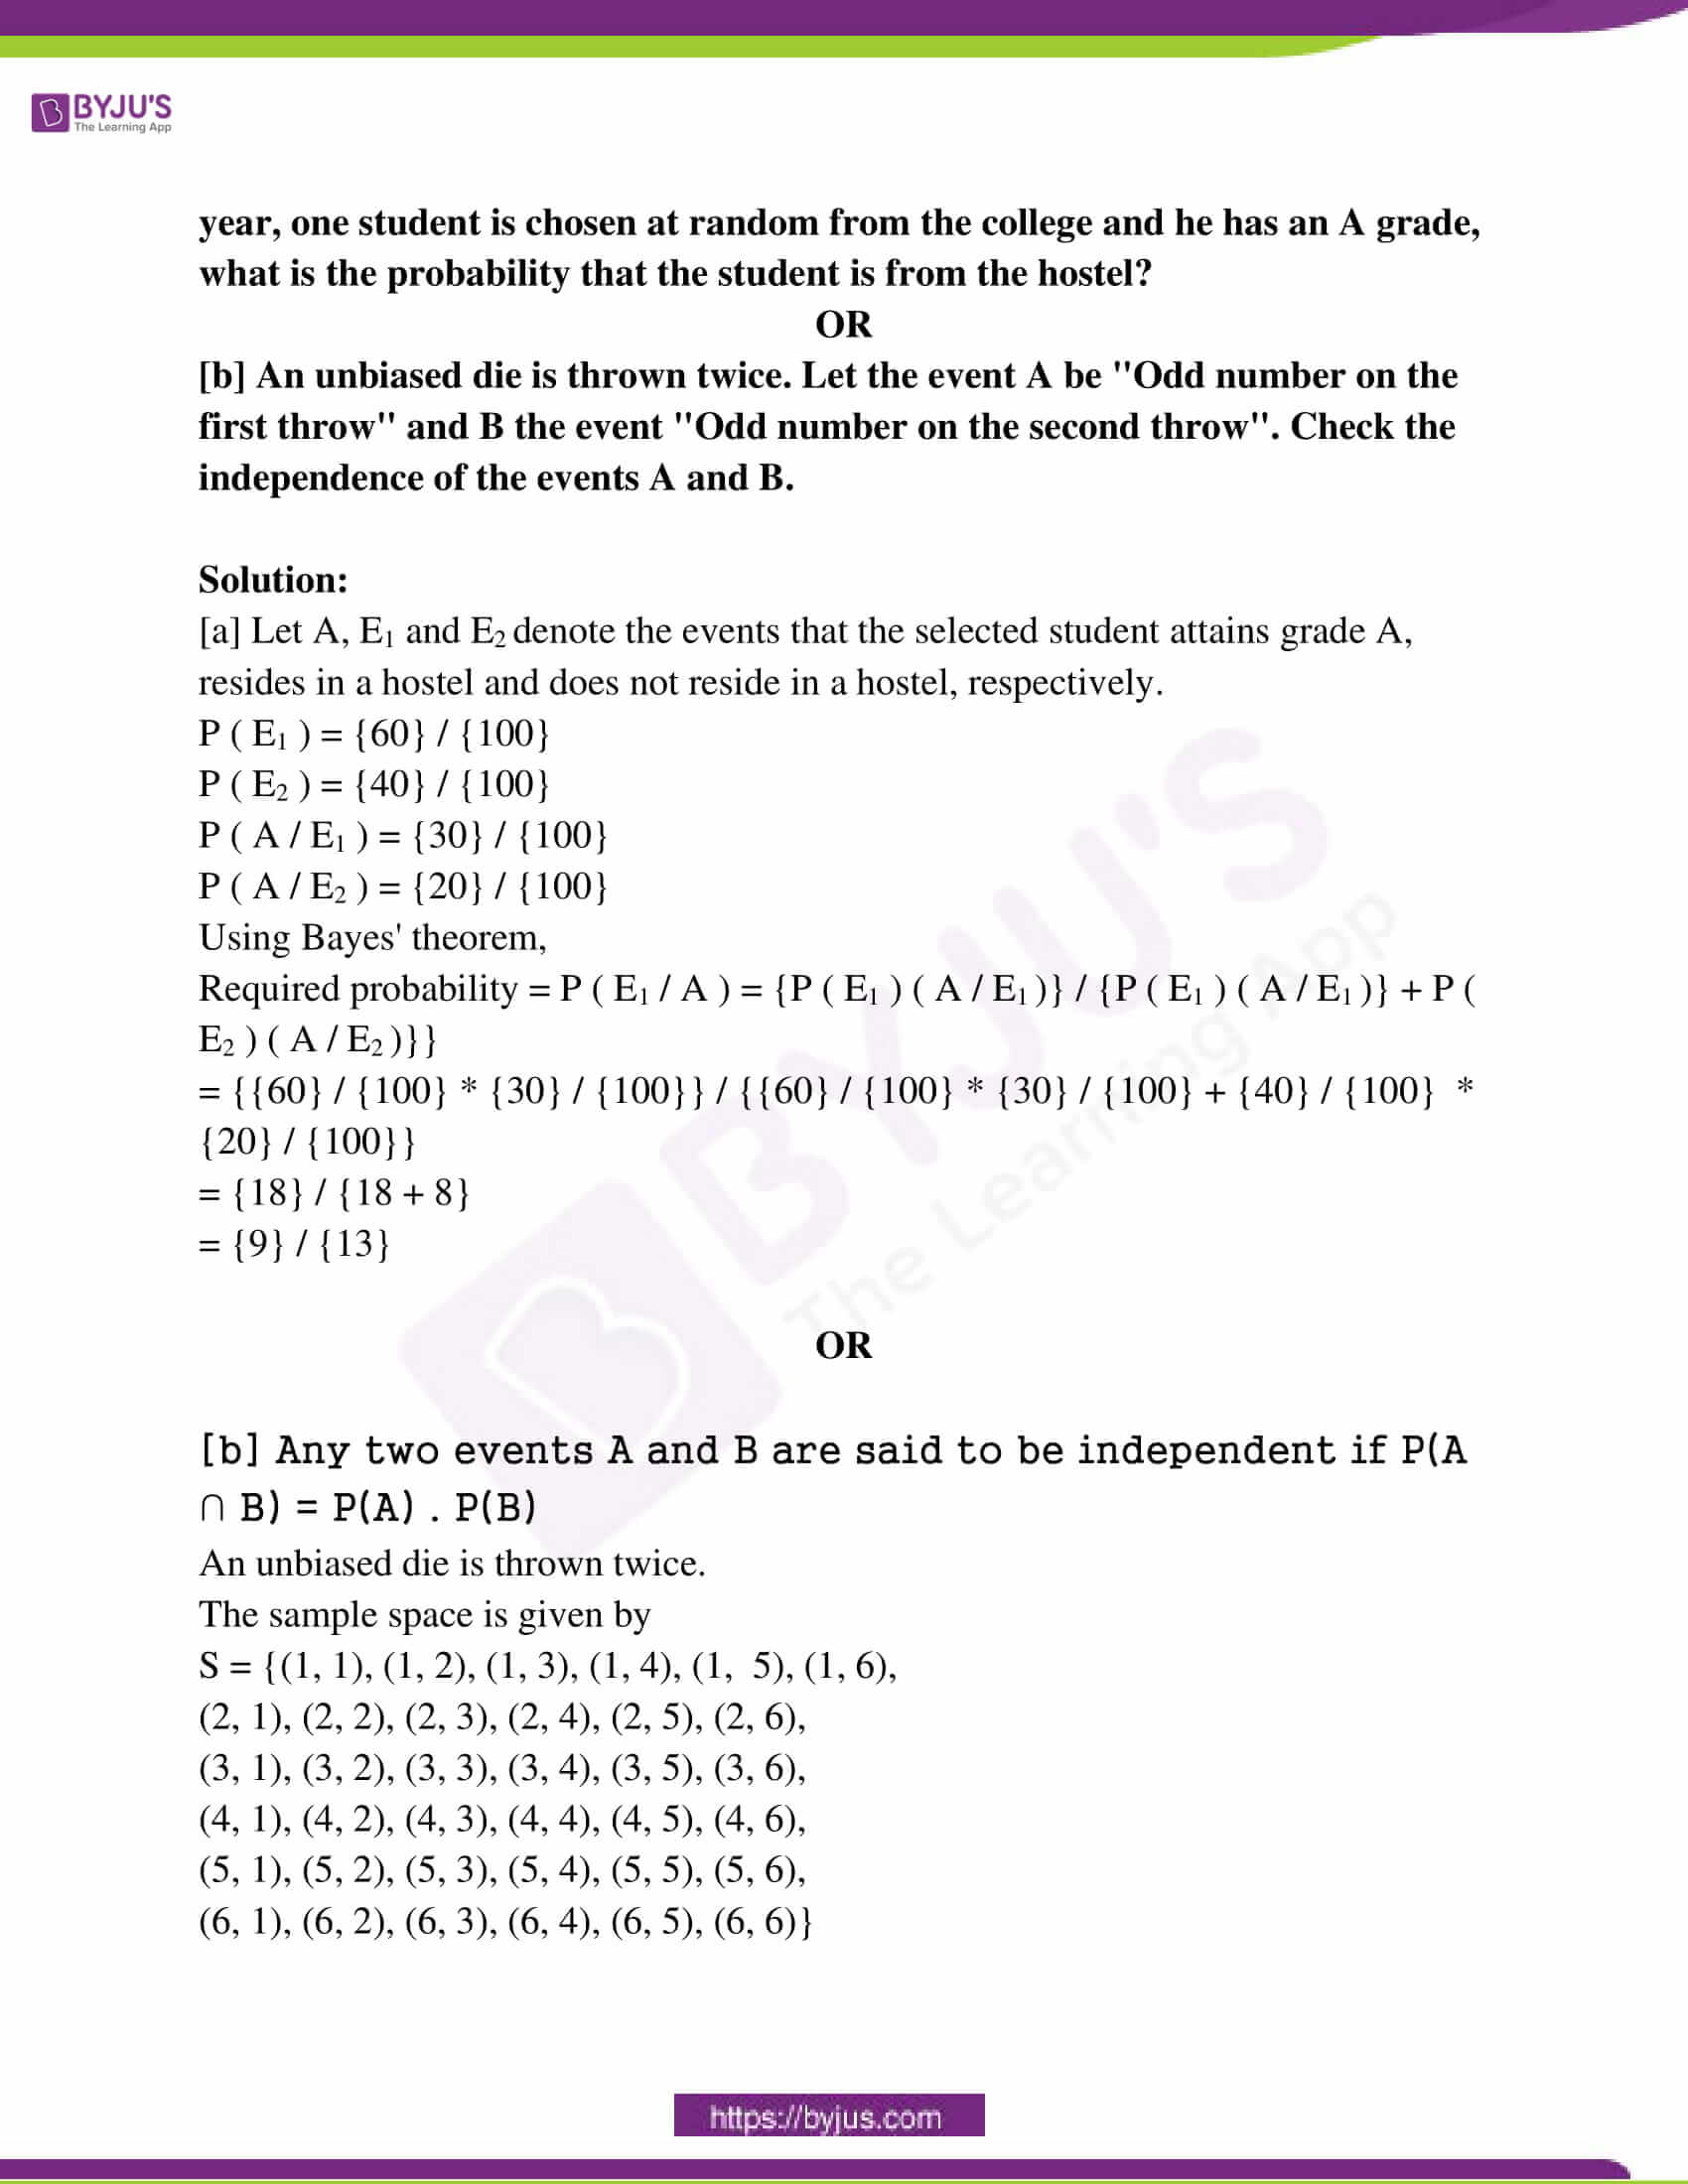 mp board class 12 questions and answers maths 2020 28